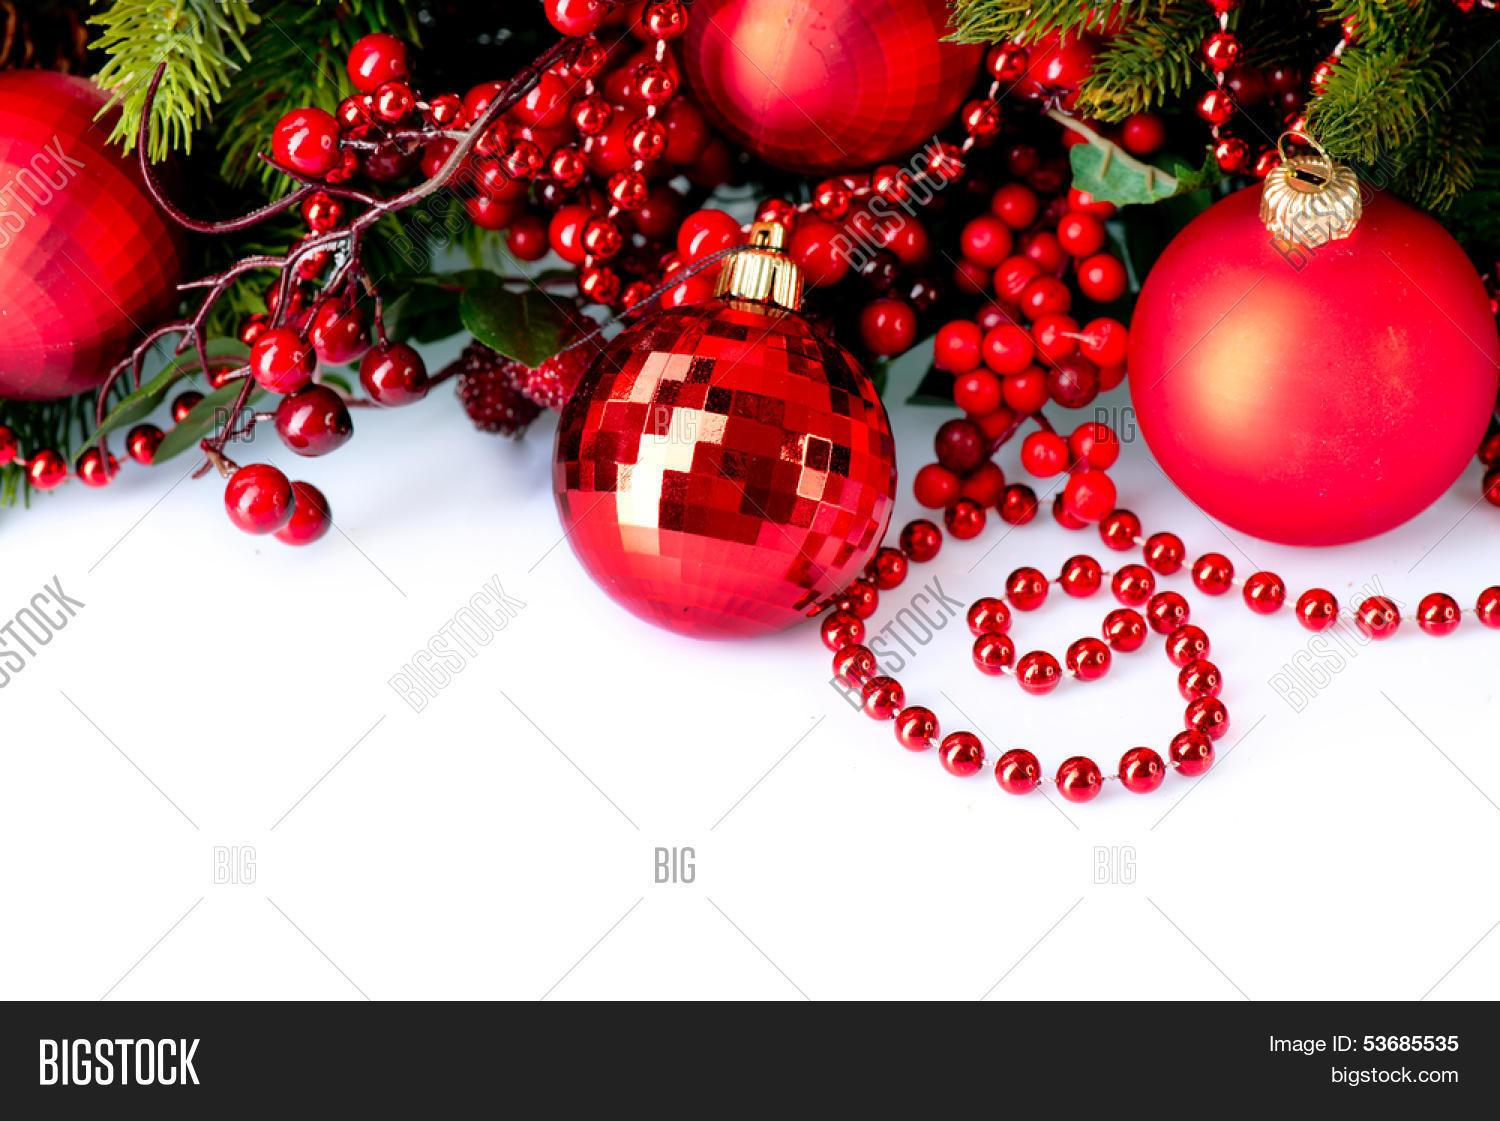 Christmas New Year Bigstock